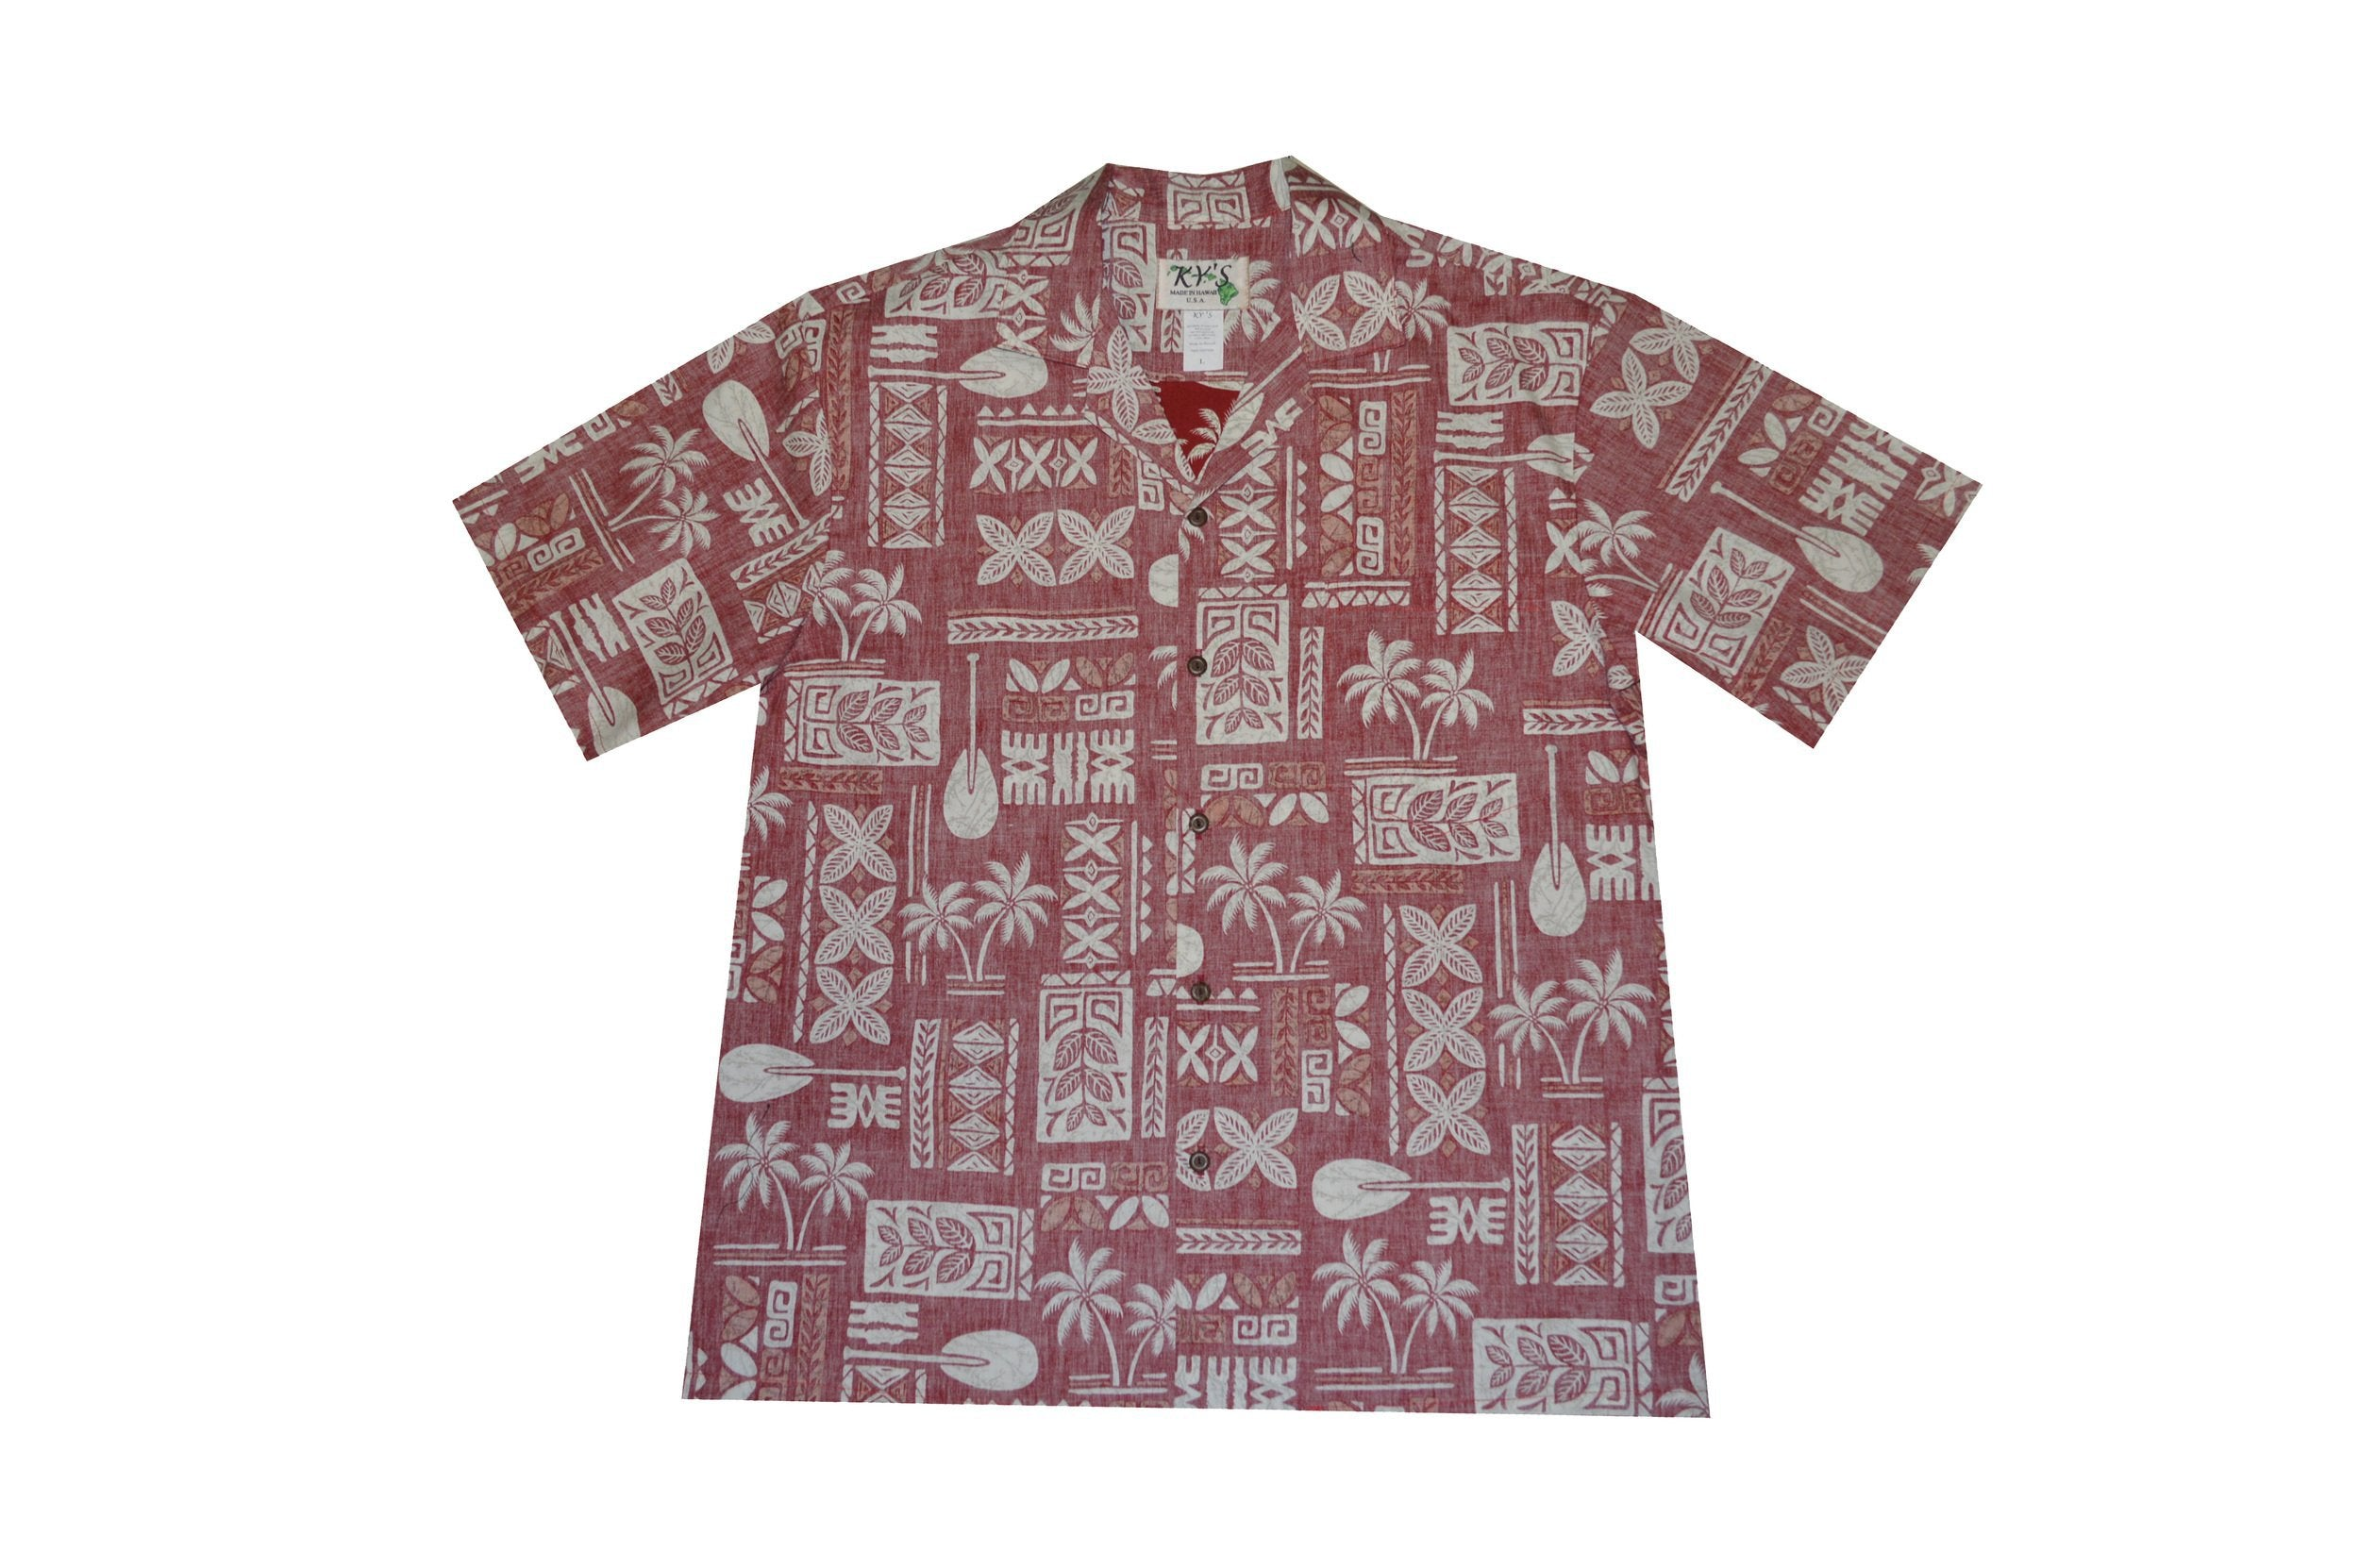 KY's Mens Button Down Red Hawaiian Tapa Pattern Shirt - Leilanis Attic